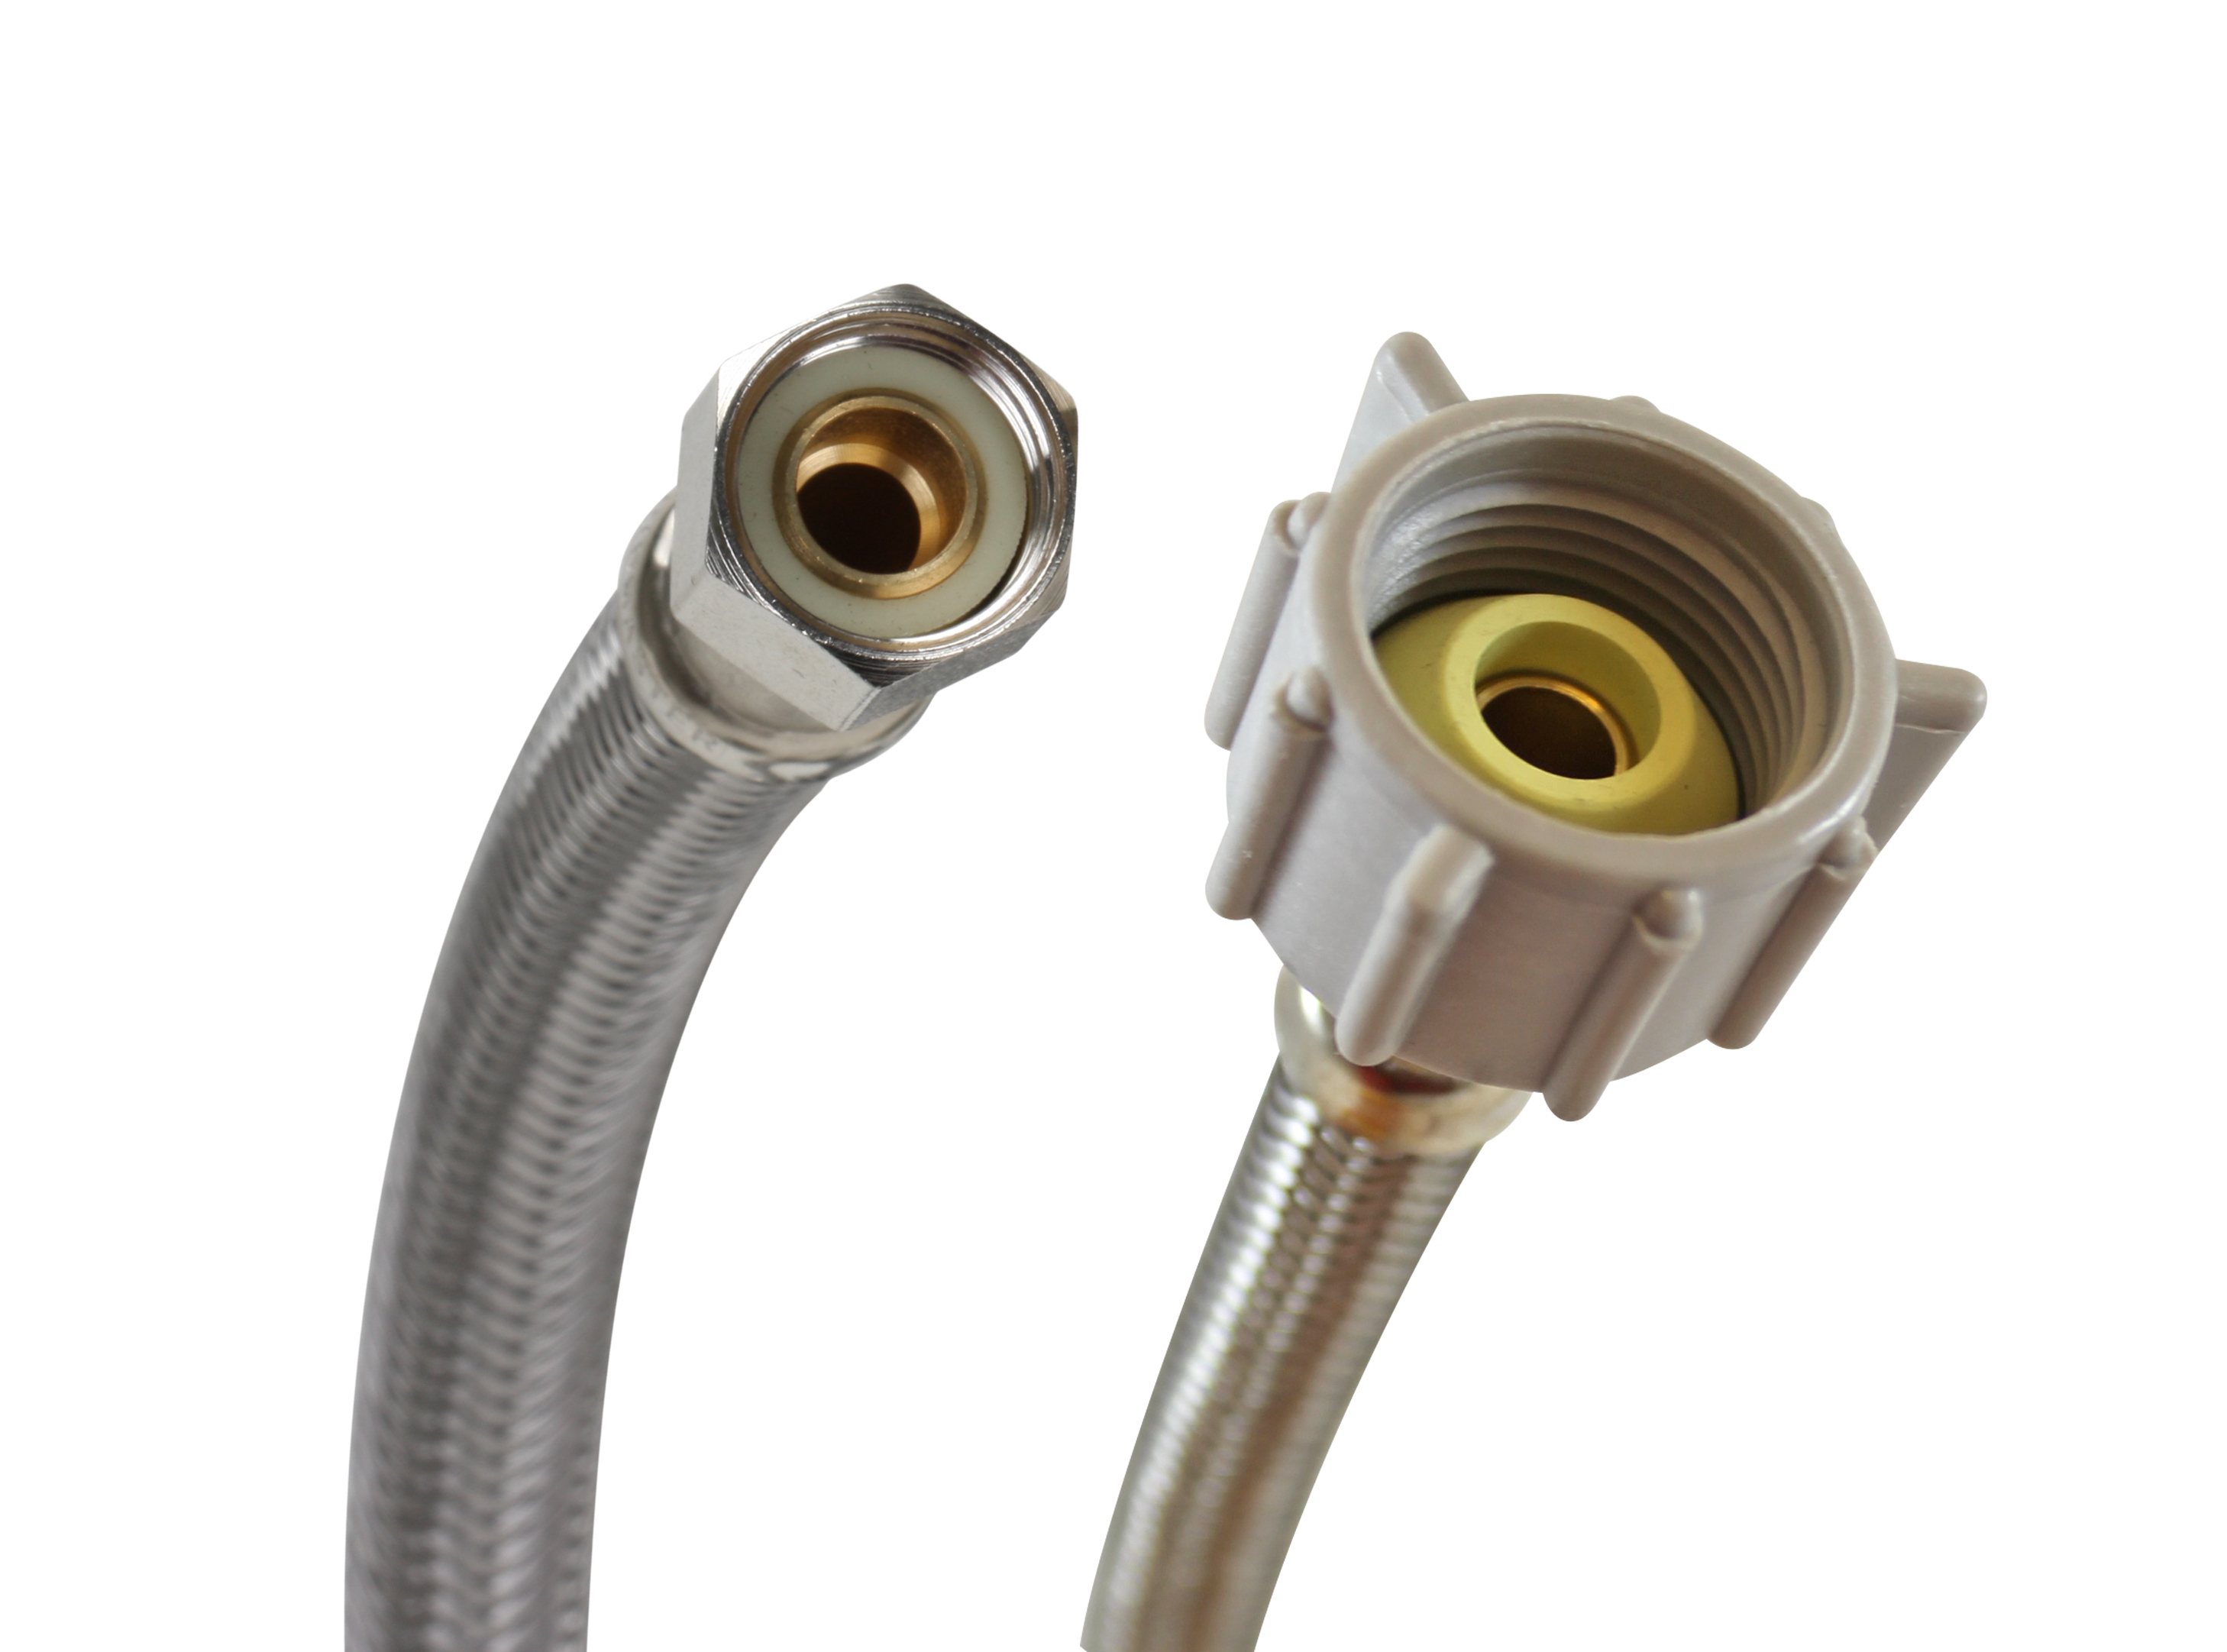 Fluidmaster Pro Series Braided Stainless Steel Toilet Supply Line 21123